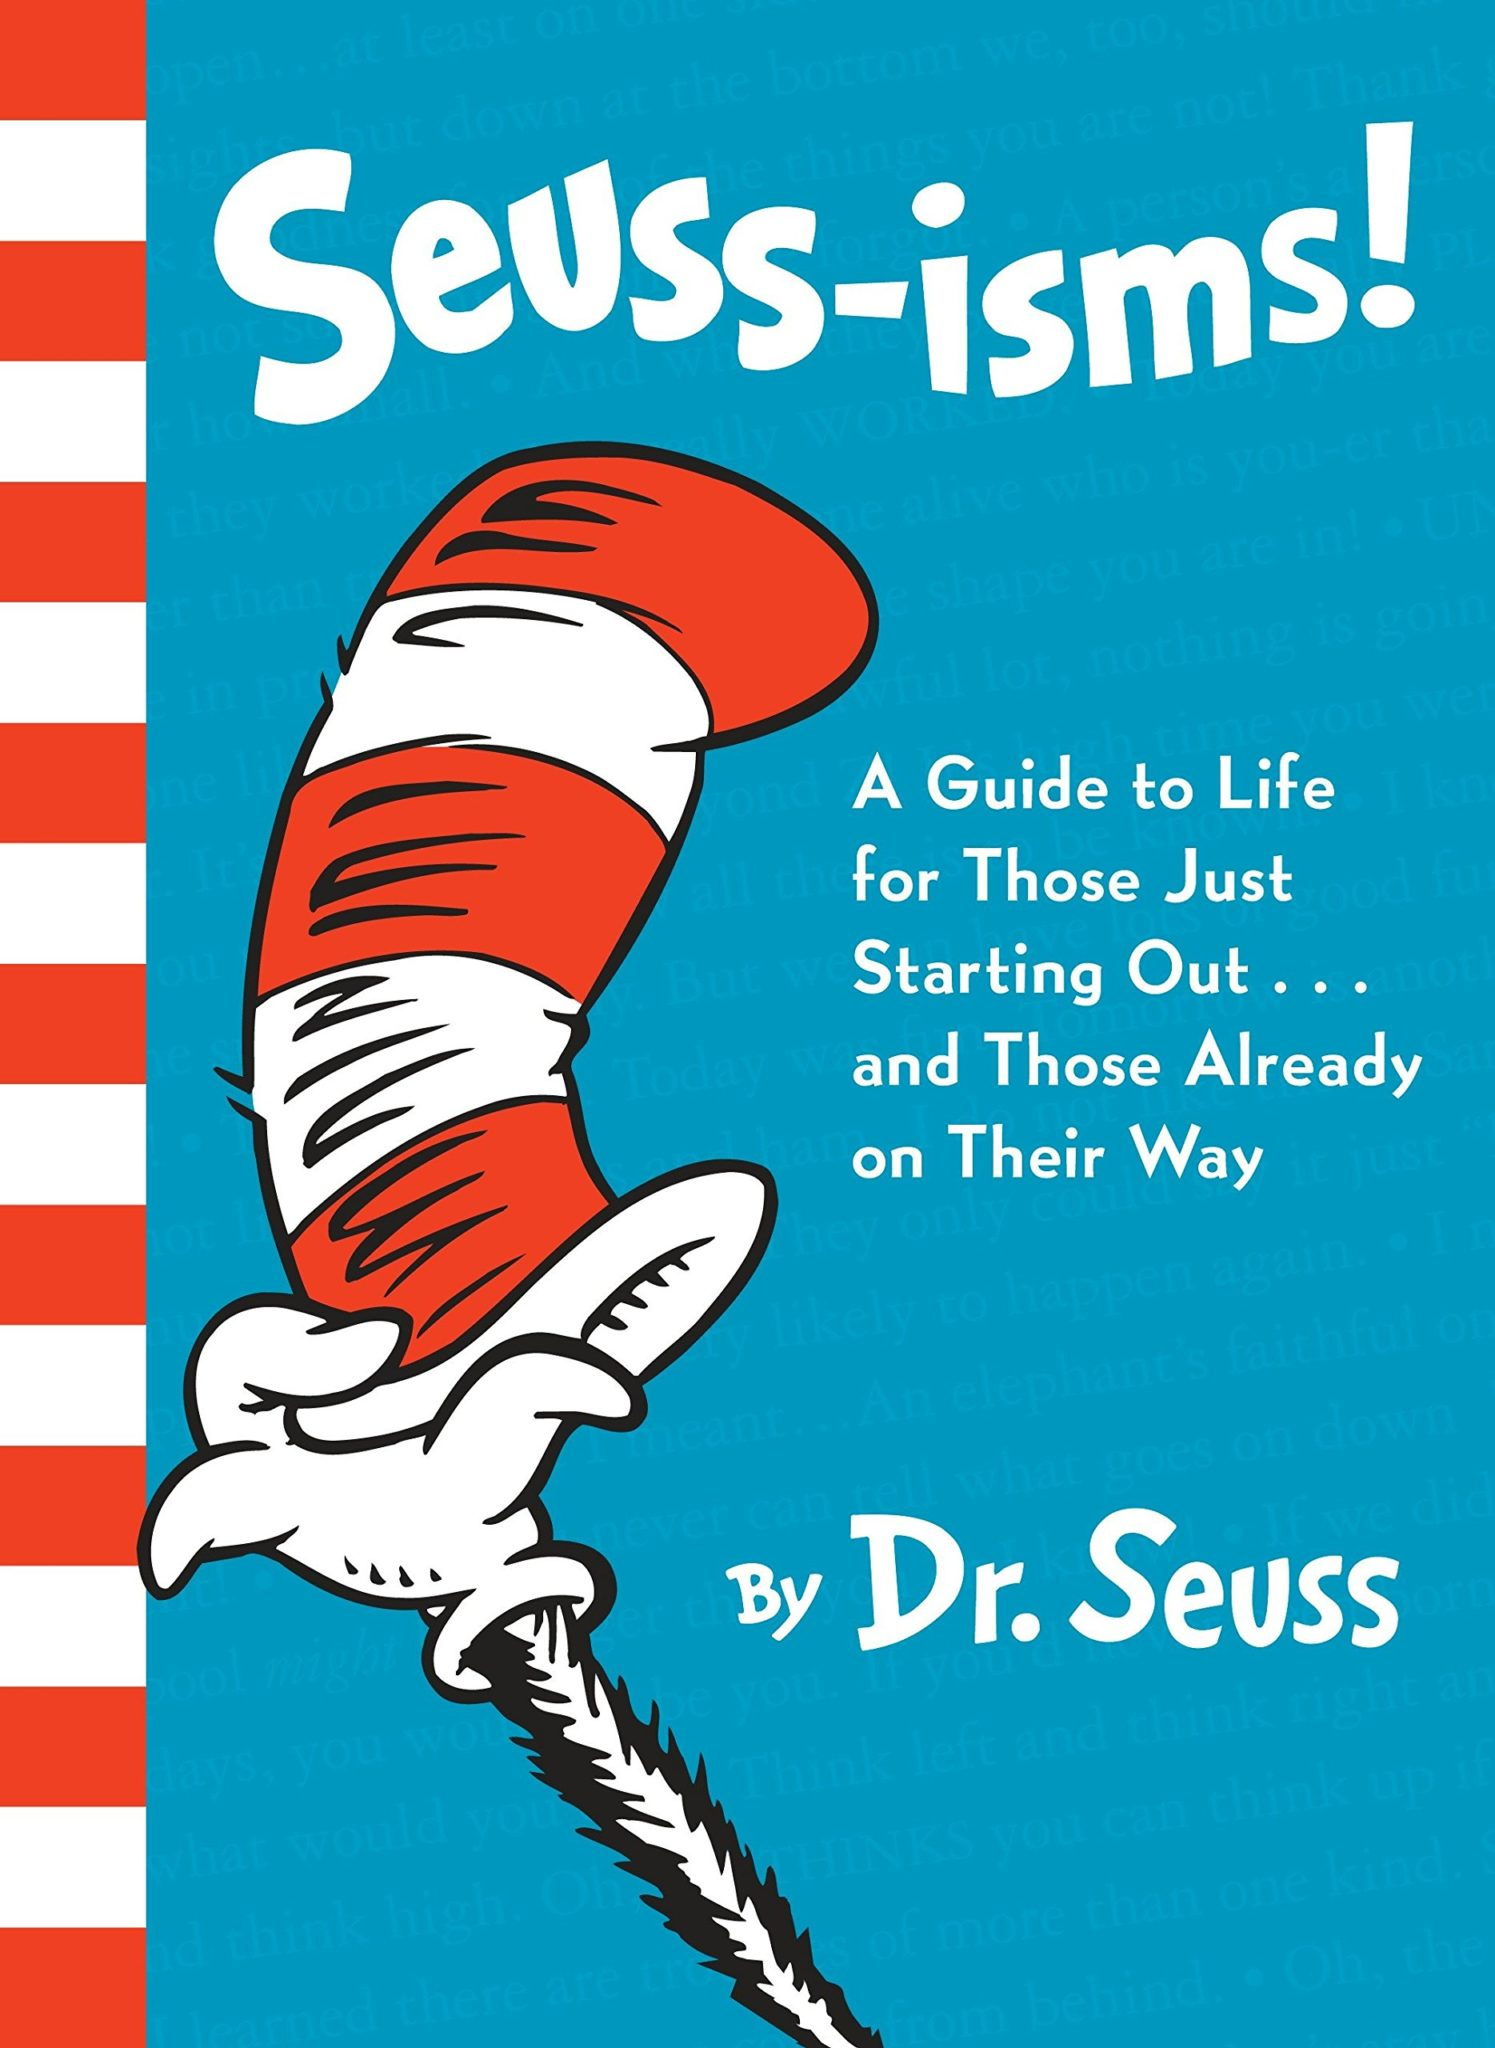 dr.-seuss-70-scaled